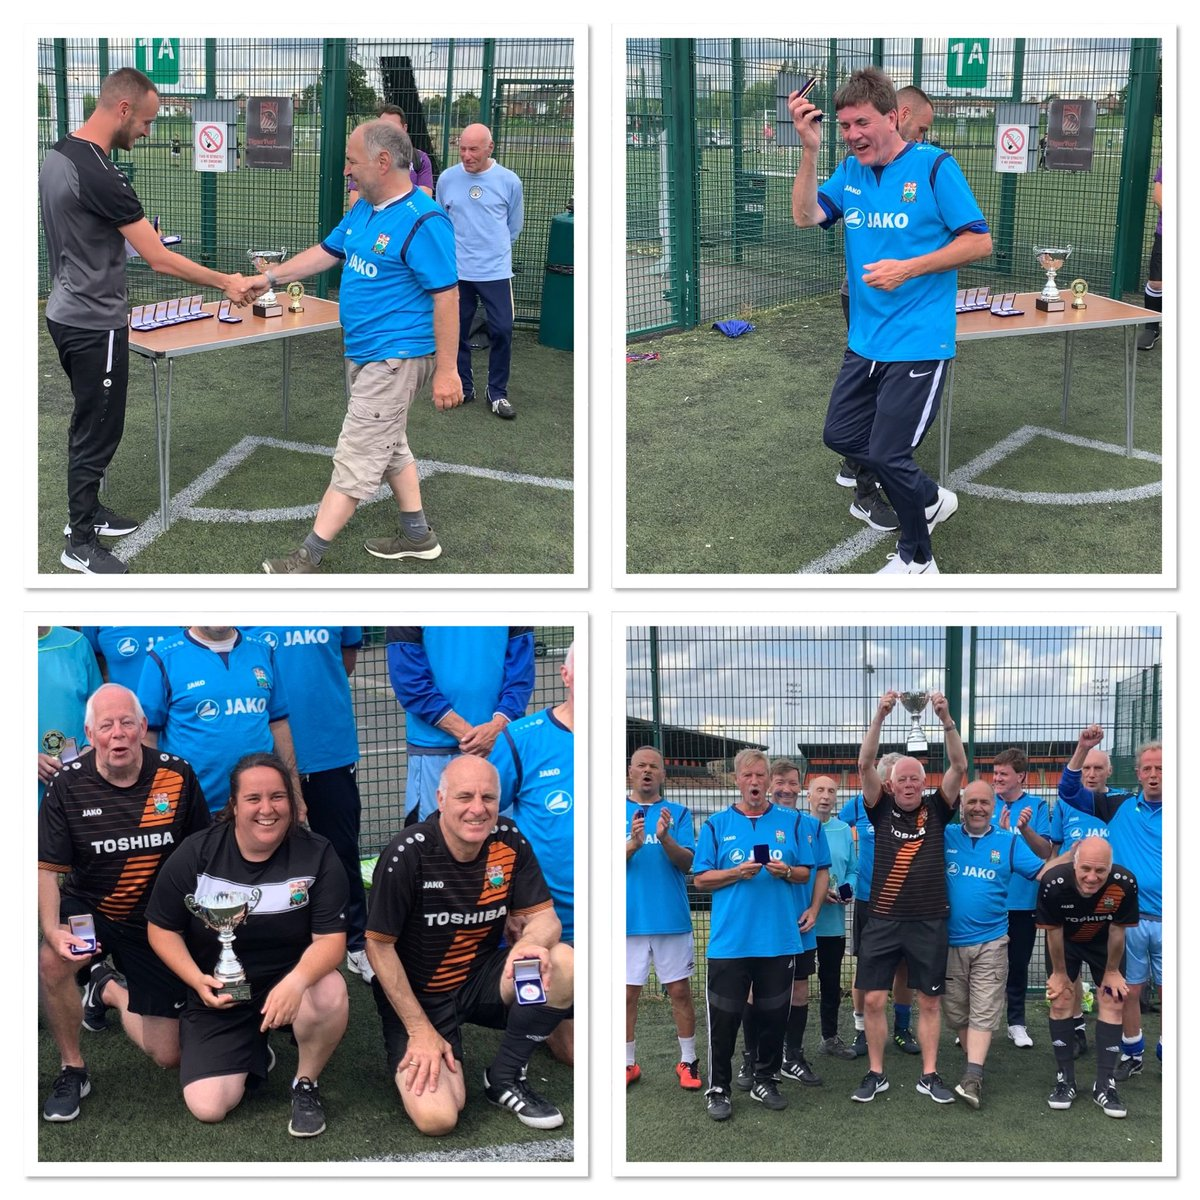 Medals & trophies presented by @HiveTrust to the @BarnetWft from @TheHiveLondon for winning the @middxfa @WalkingFootball central league A fun time had by one & all play with a smile win lose or draw  <br>http://pic.twitter.com/EV2WkXEti1